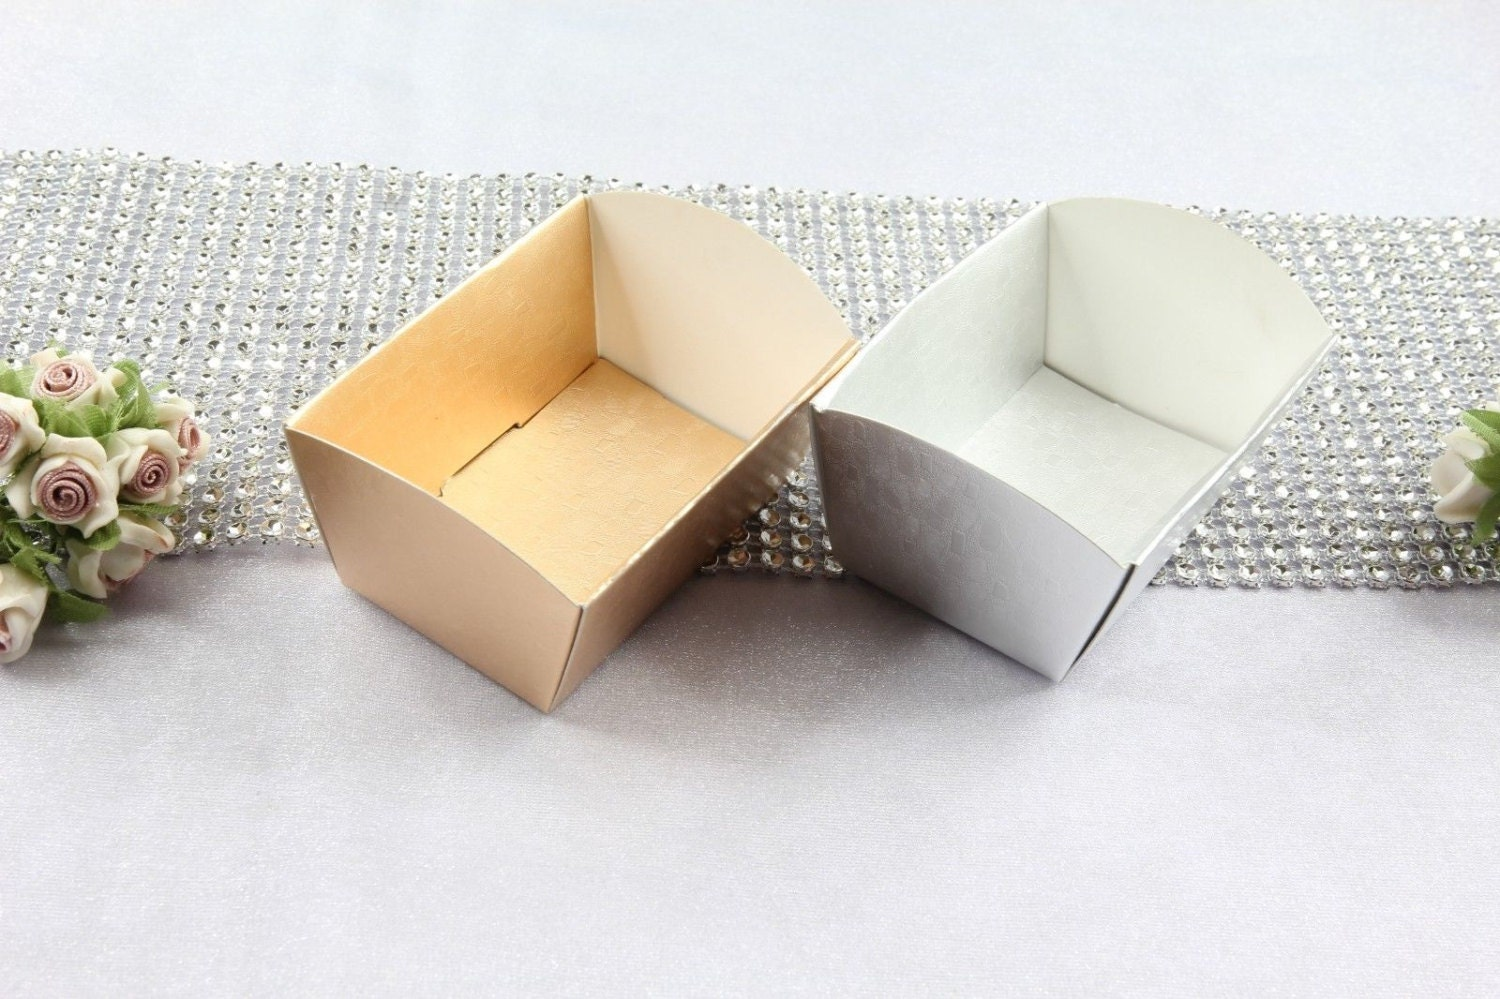 Mini Paper Candy Cup : Metallic mini paper pieces candy cups cookie nut tray